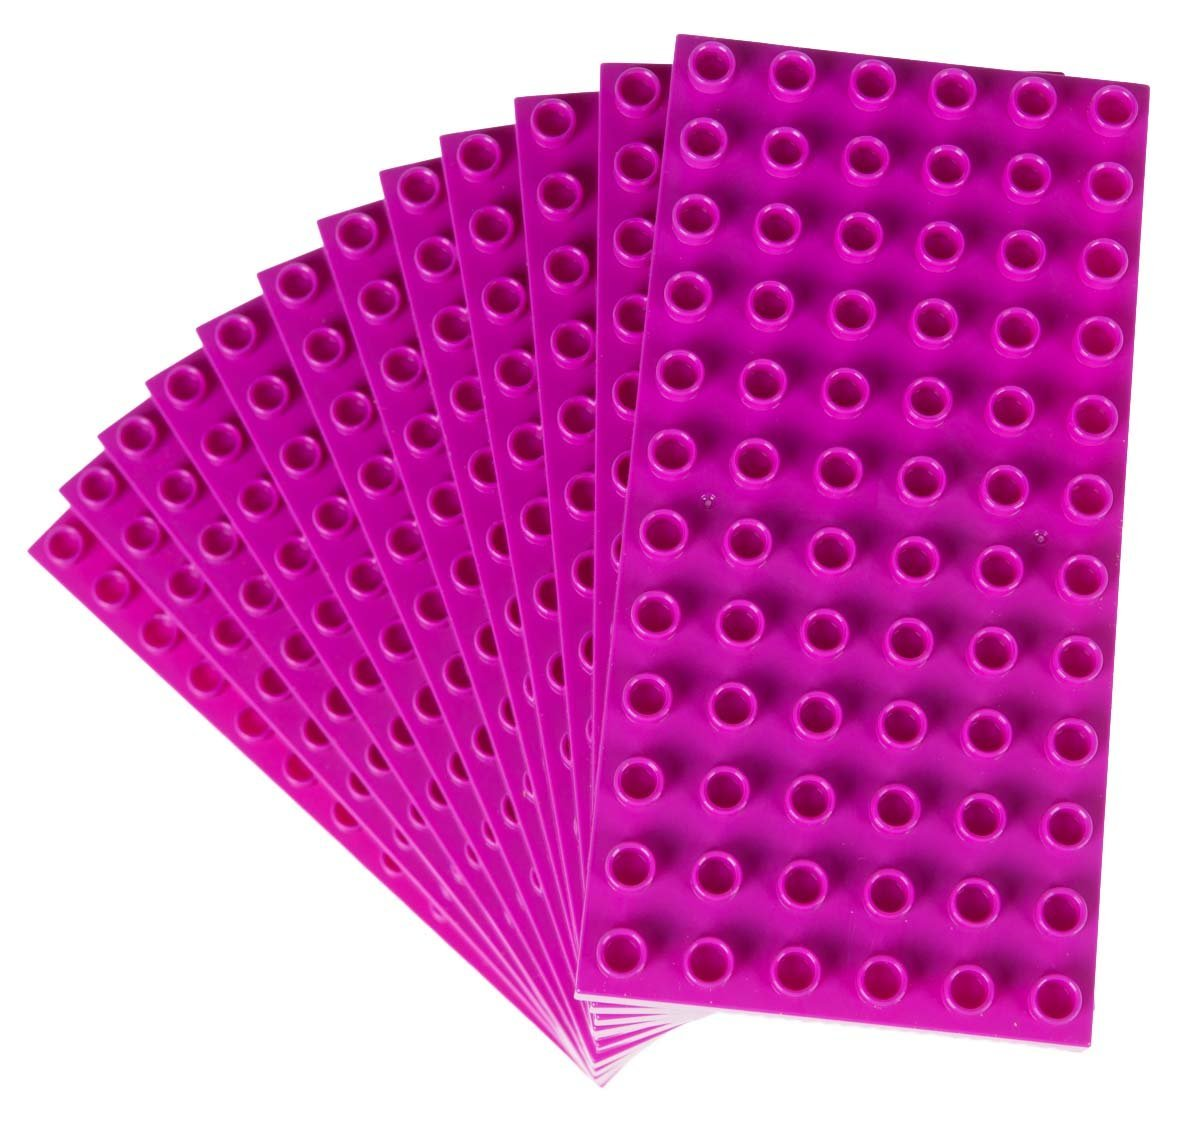 "Classic Big Briks Baseplates by Strictly Bricks | Premium 7.5"" x 3.75"" Large Brick Building Base Plates 